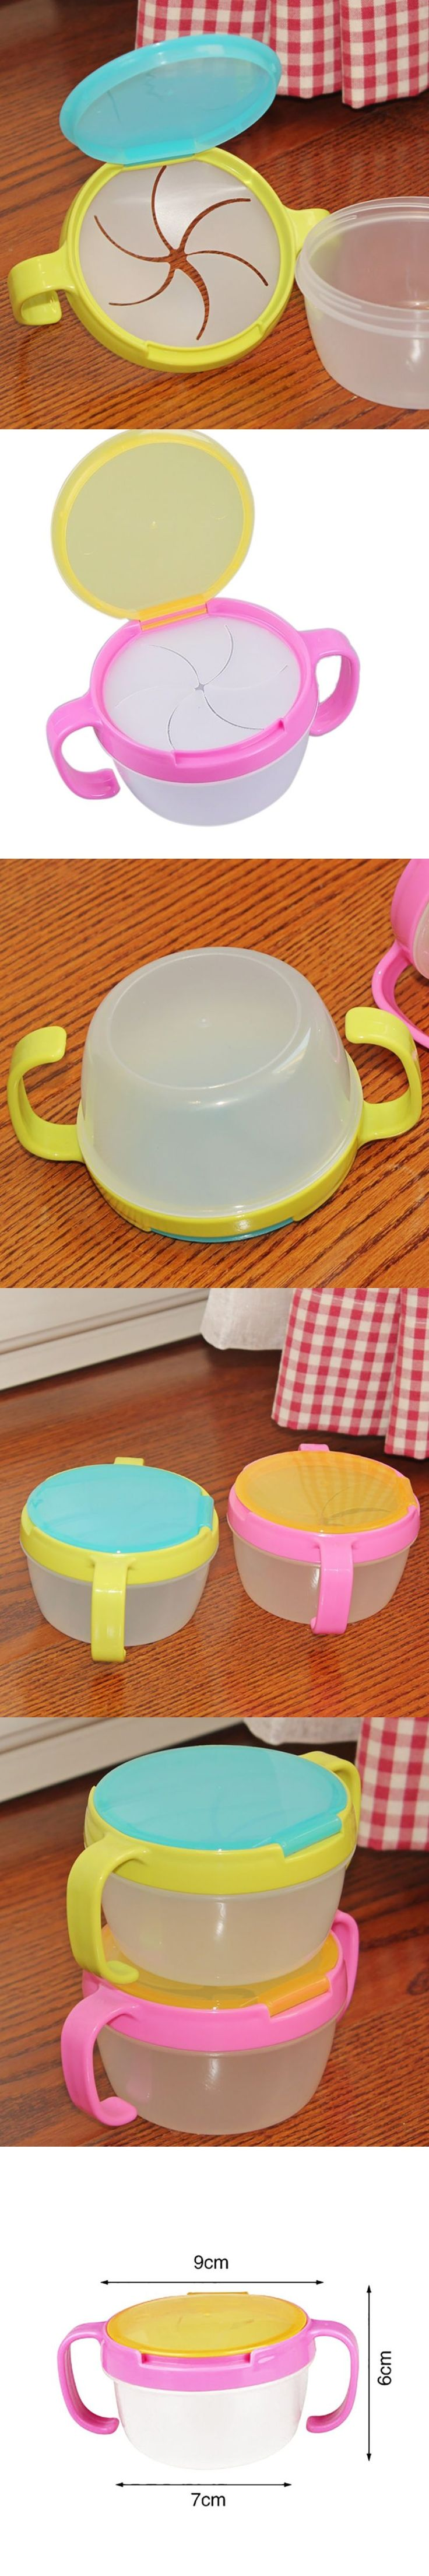 New Arrived Funny Infant Baby Feeding Bowl Toy Double Handle Spill Proof Cup Biscuits Snack Bowl Gift Kids Accessories